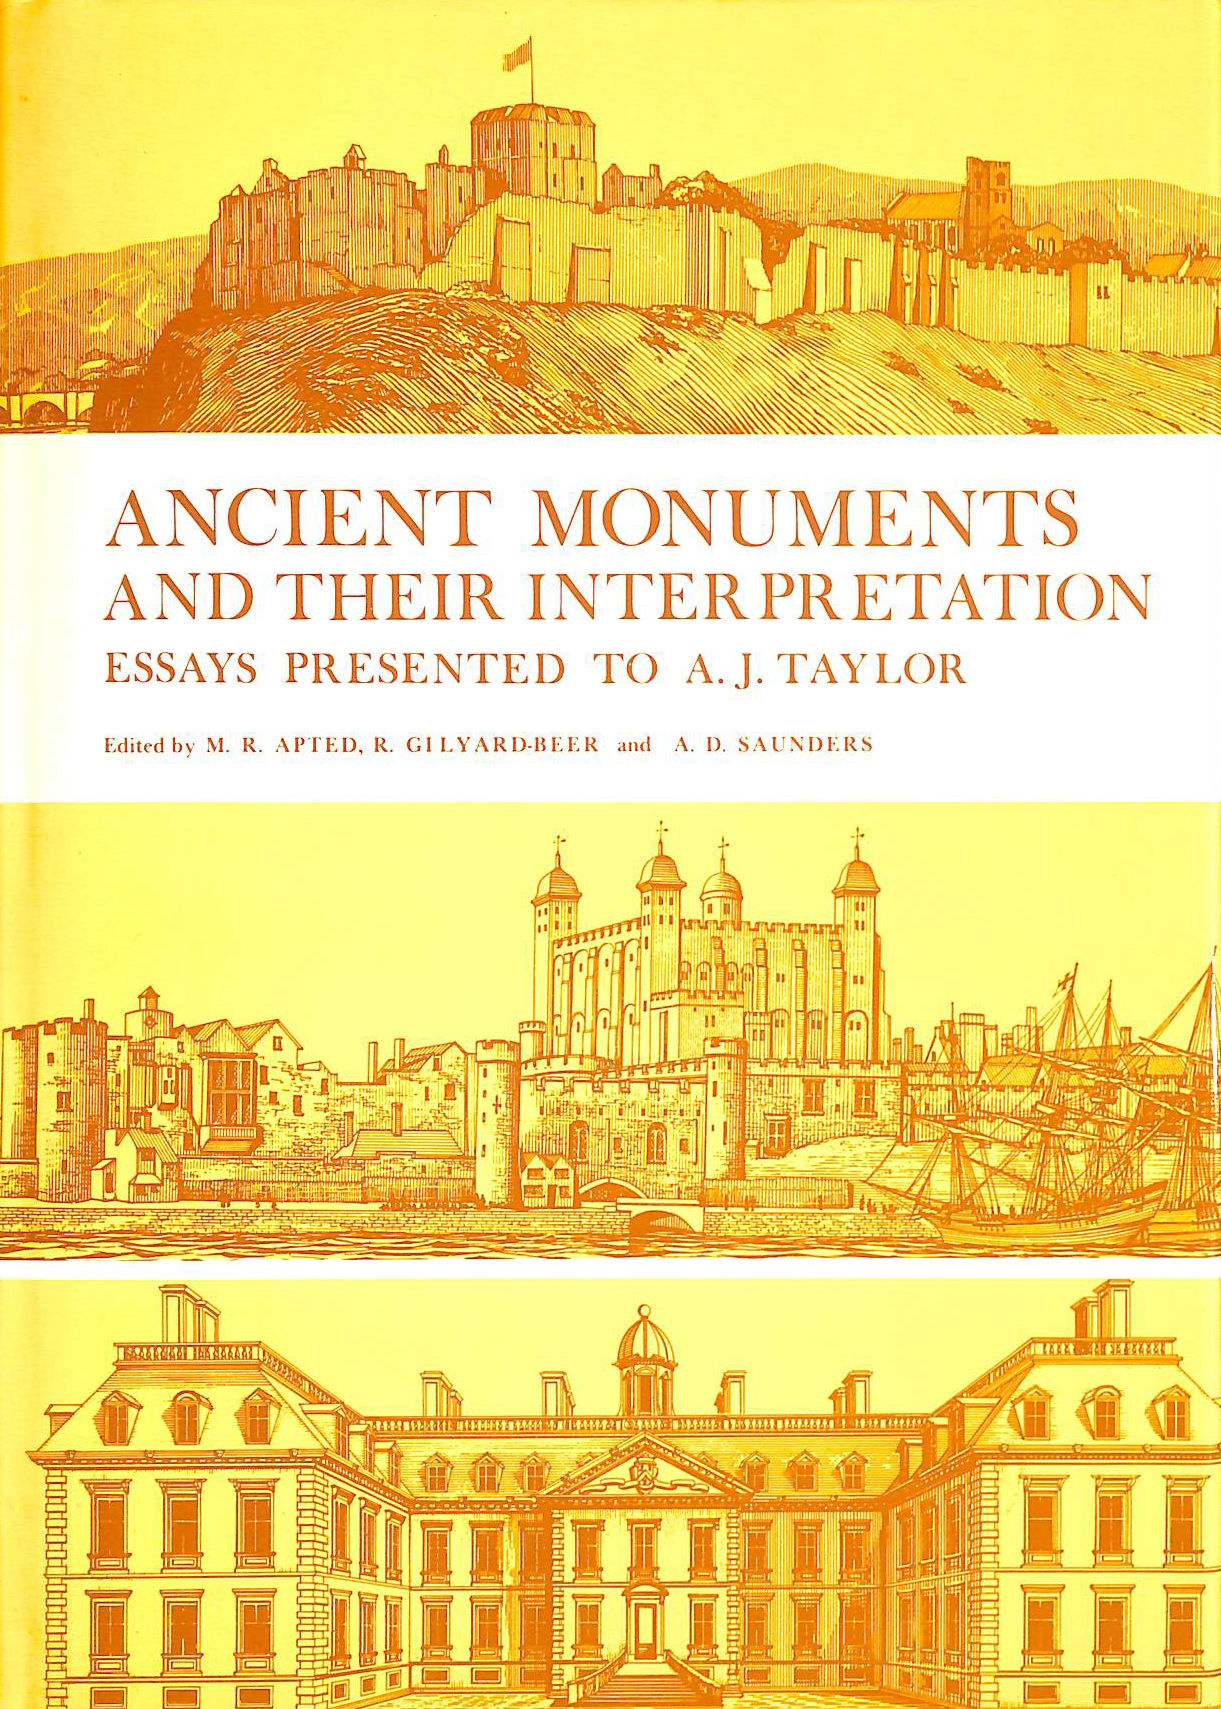 Image for Ancient Monuments and their Interpretation: Essays presented to A. J. Taylor